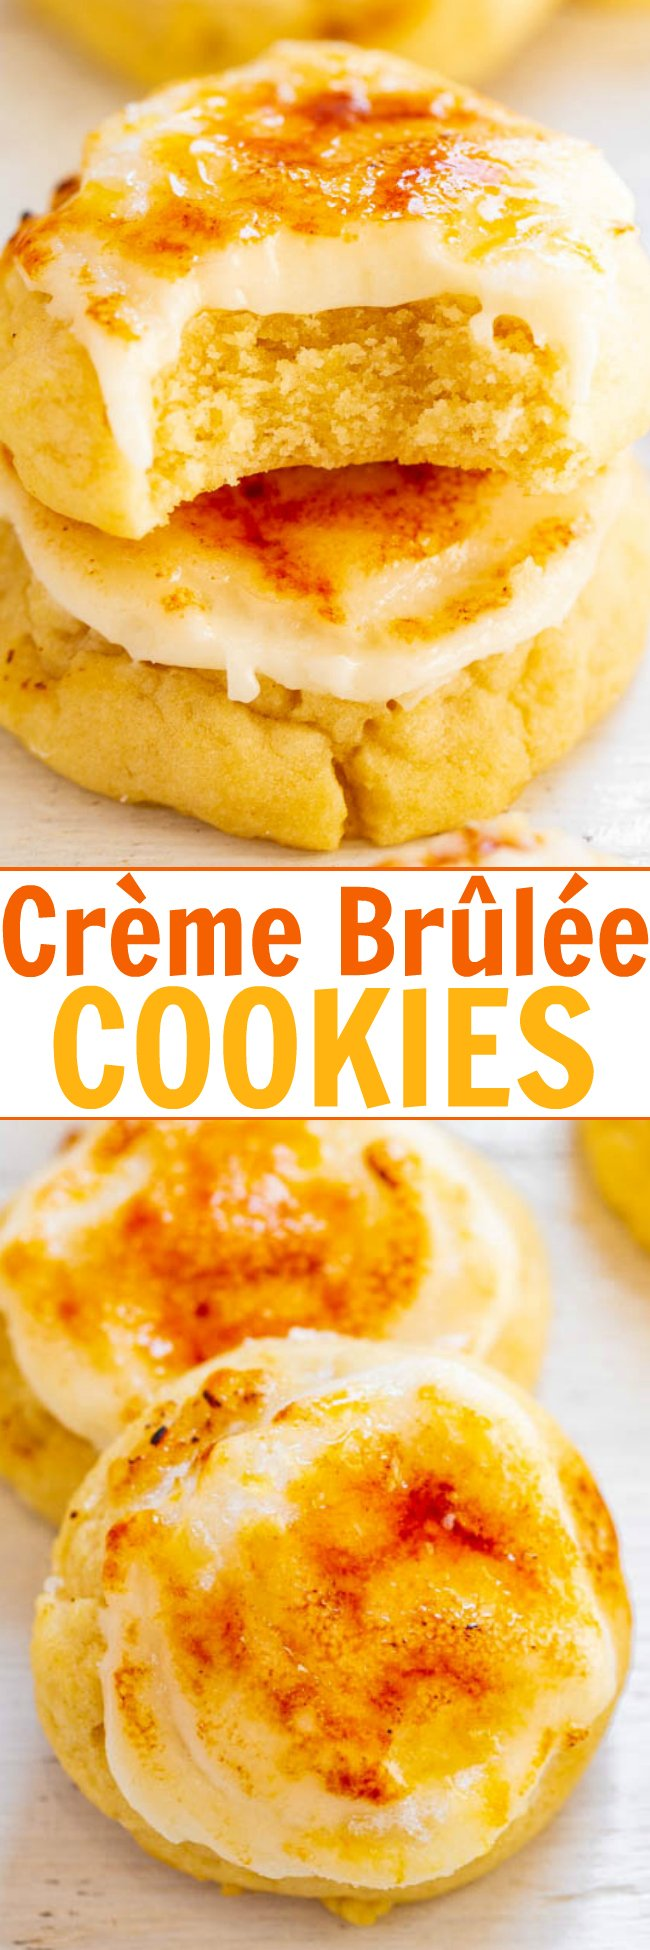 Crème Brûlée Cookies - Super SOFT sugar cookies topped with tangy cream cheese frosting and caramelized sugar!! If you're a crème brûlée fan, you're going to LOVE these cookies! So many INCREDIBLE flavors and textures in every bite!!